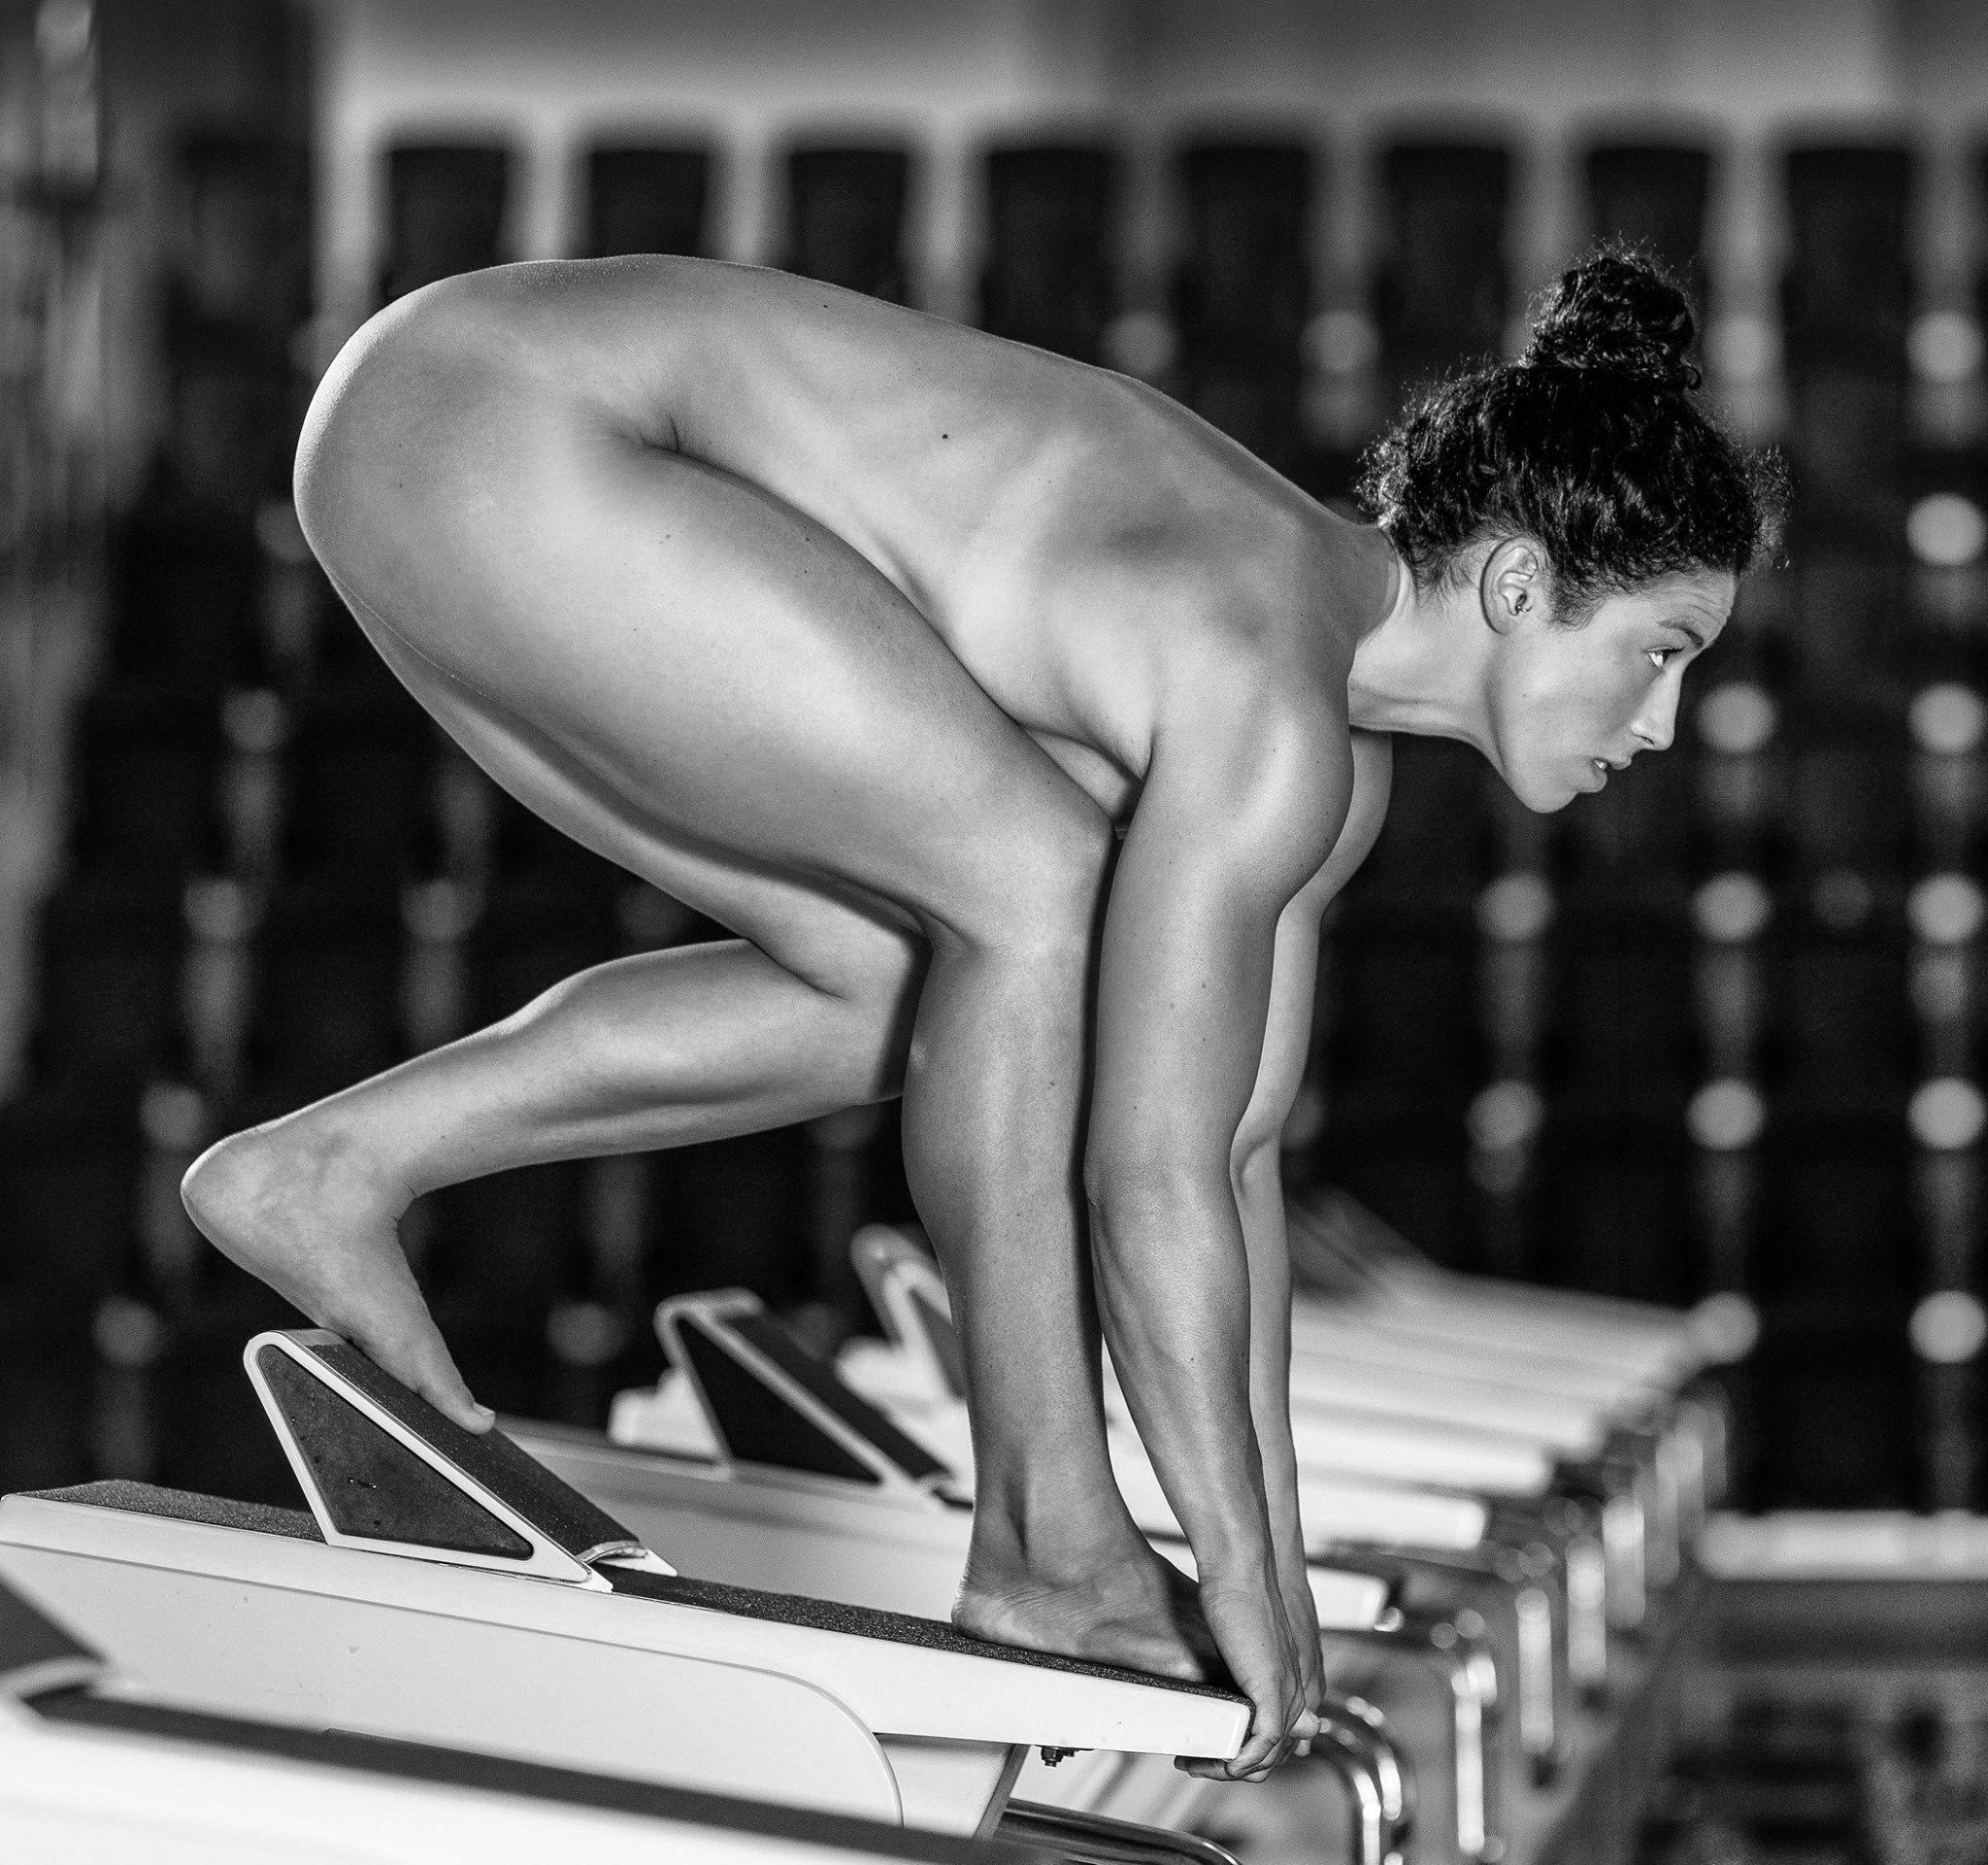 Athlete naked photo 3